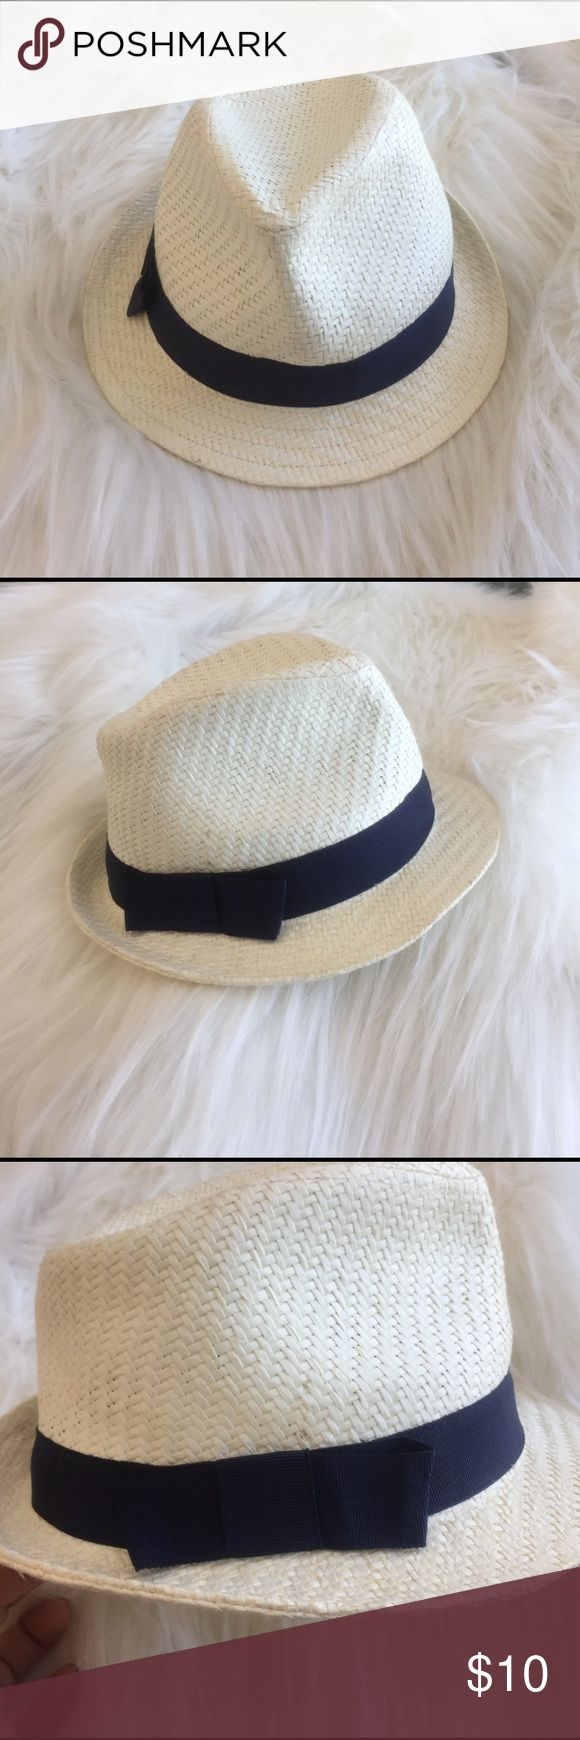 Gymboree white fedora hat White with navy blue band, size 2T- 3T, 19.5' round measured the blue inside band. Gymboree Accessories Hats